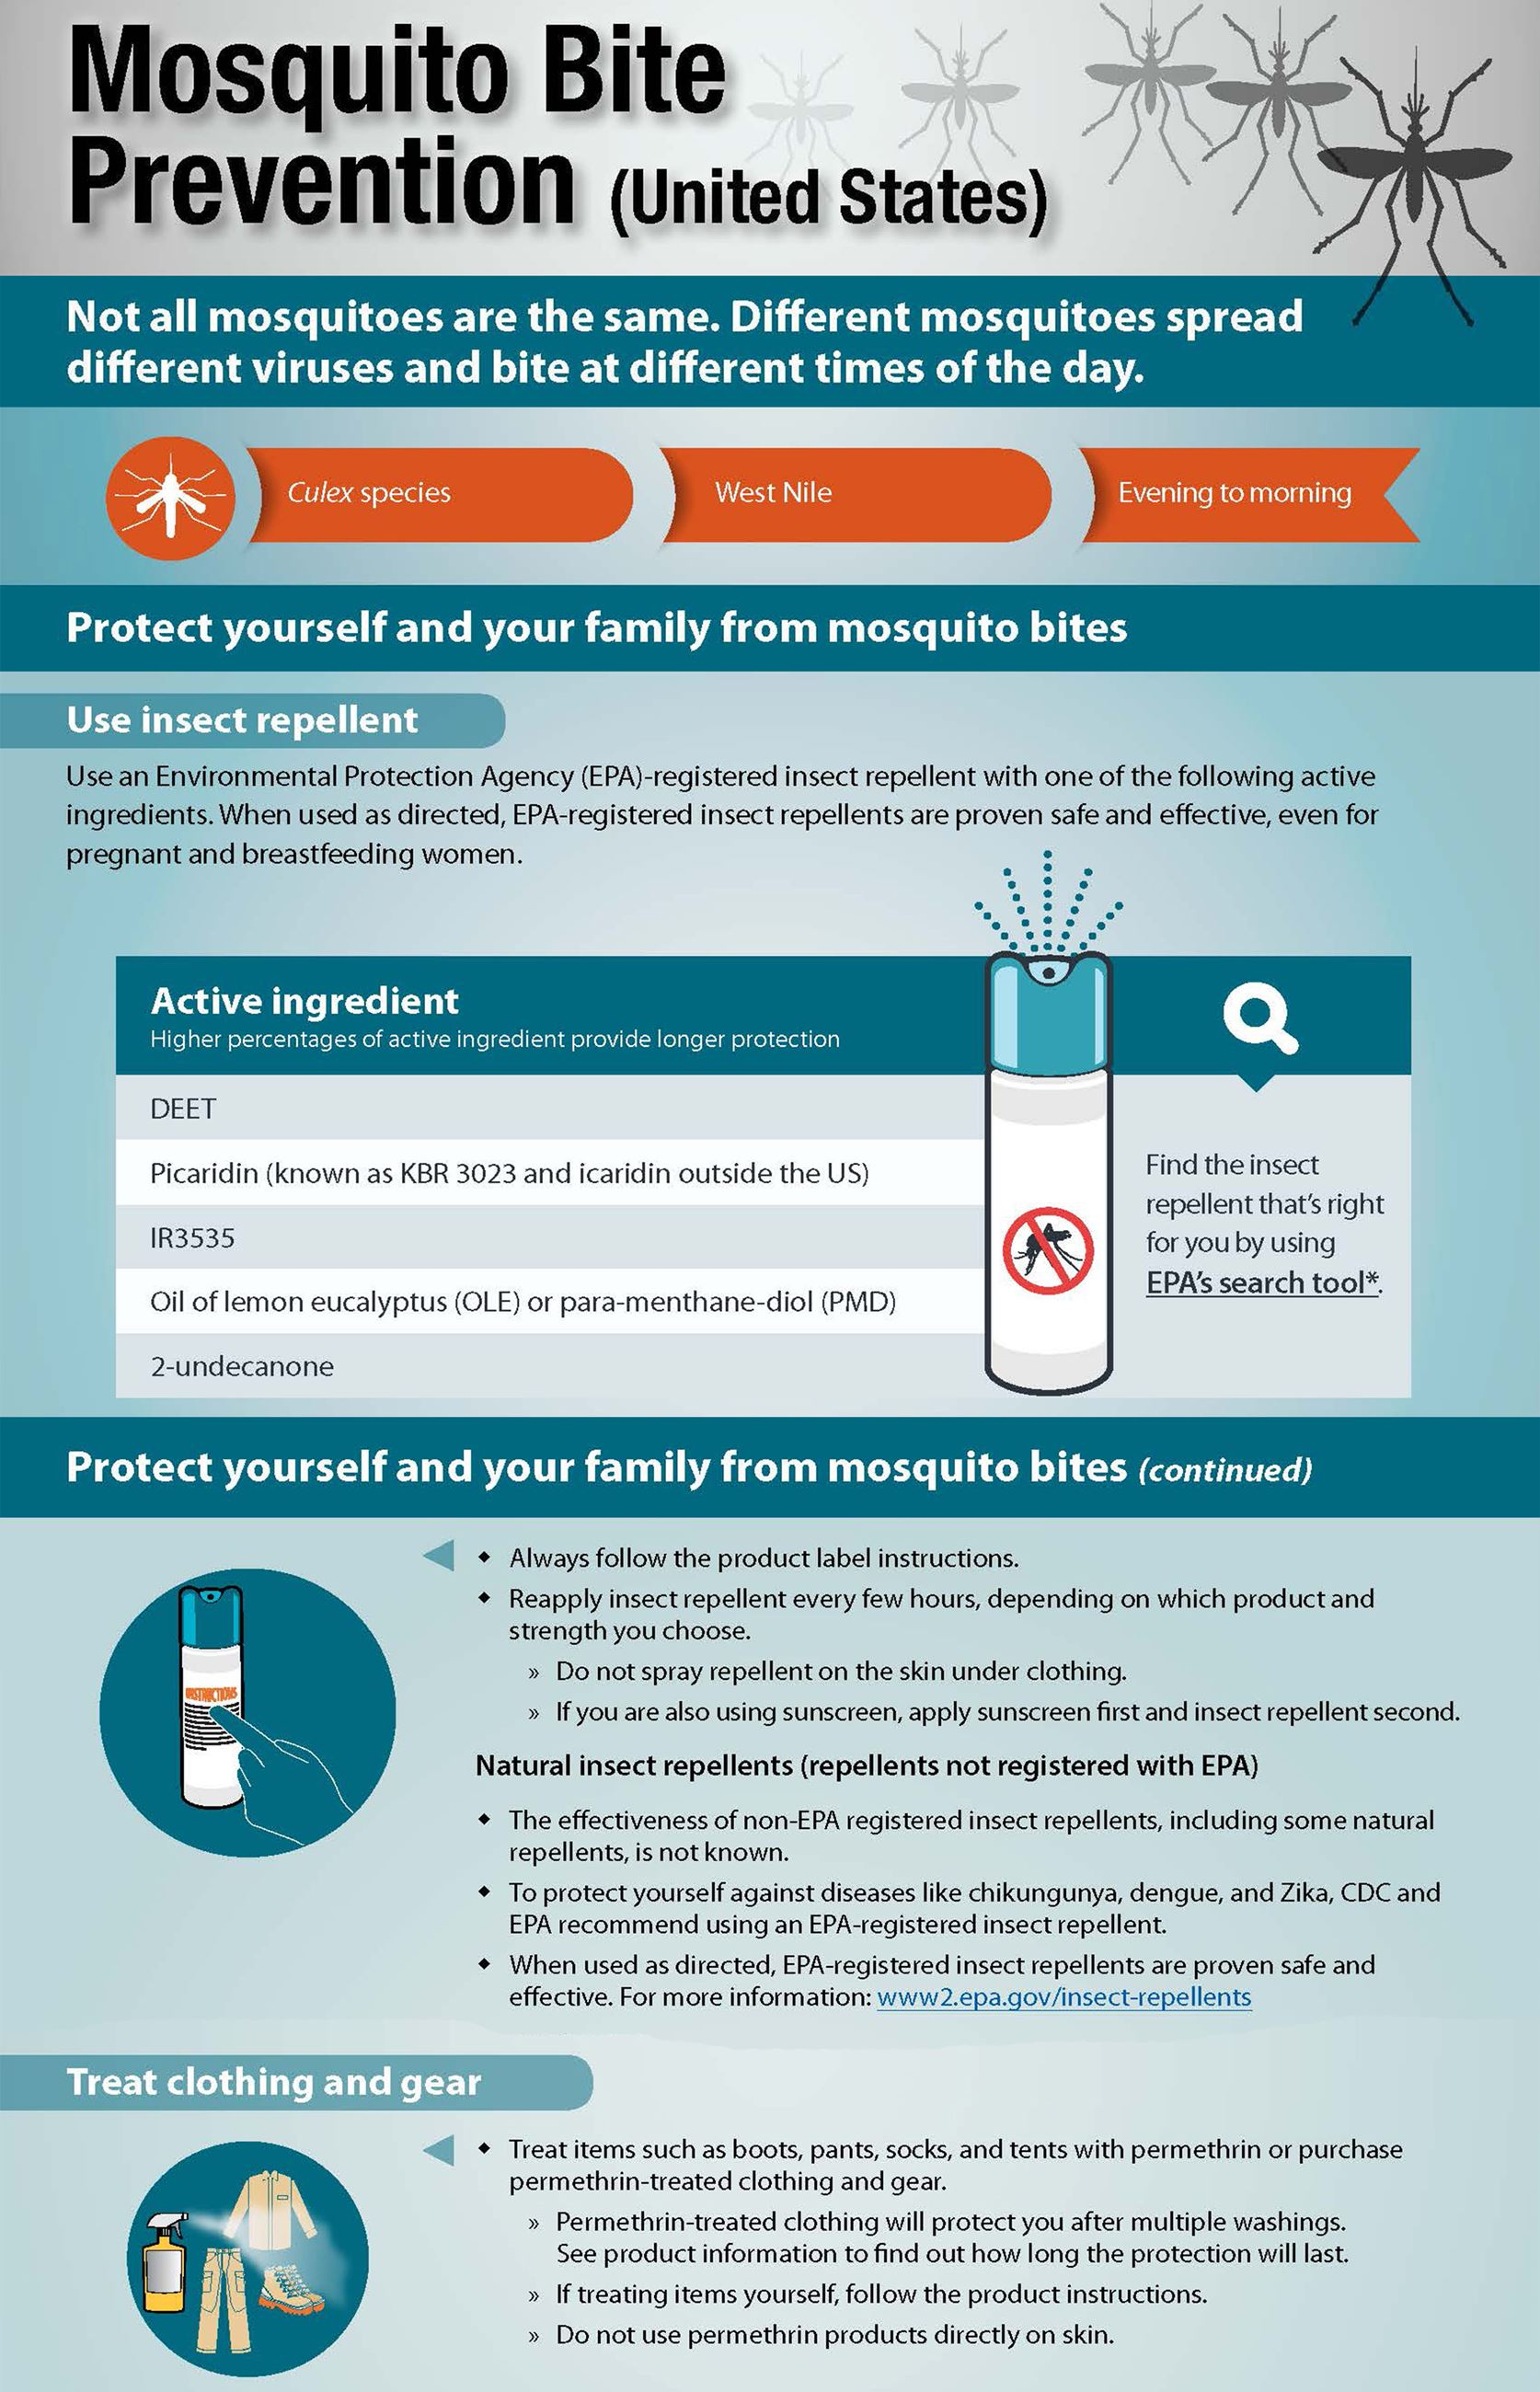 Mosquito Prevention CDC Infographic